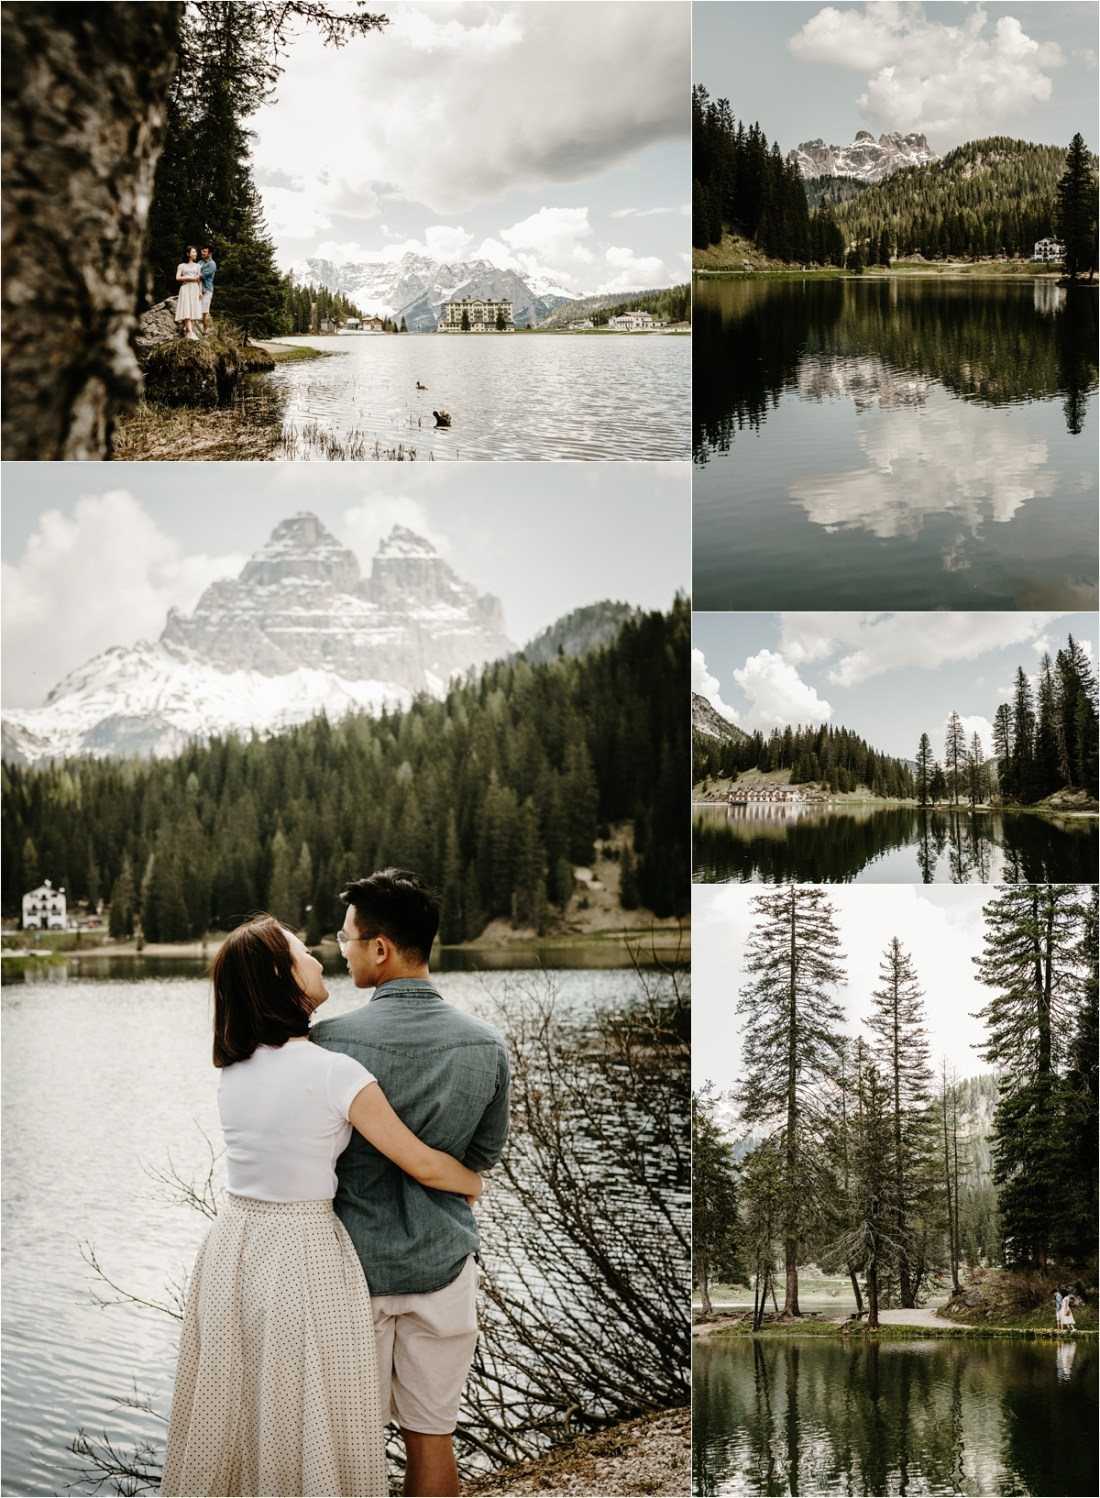 Views of lake Misurina during an engagement shoot in the Dolomites by Wild Connections Photography